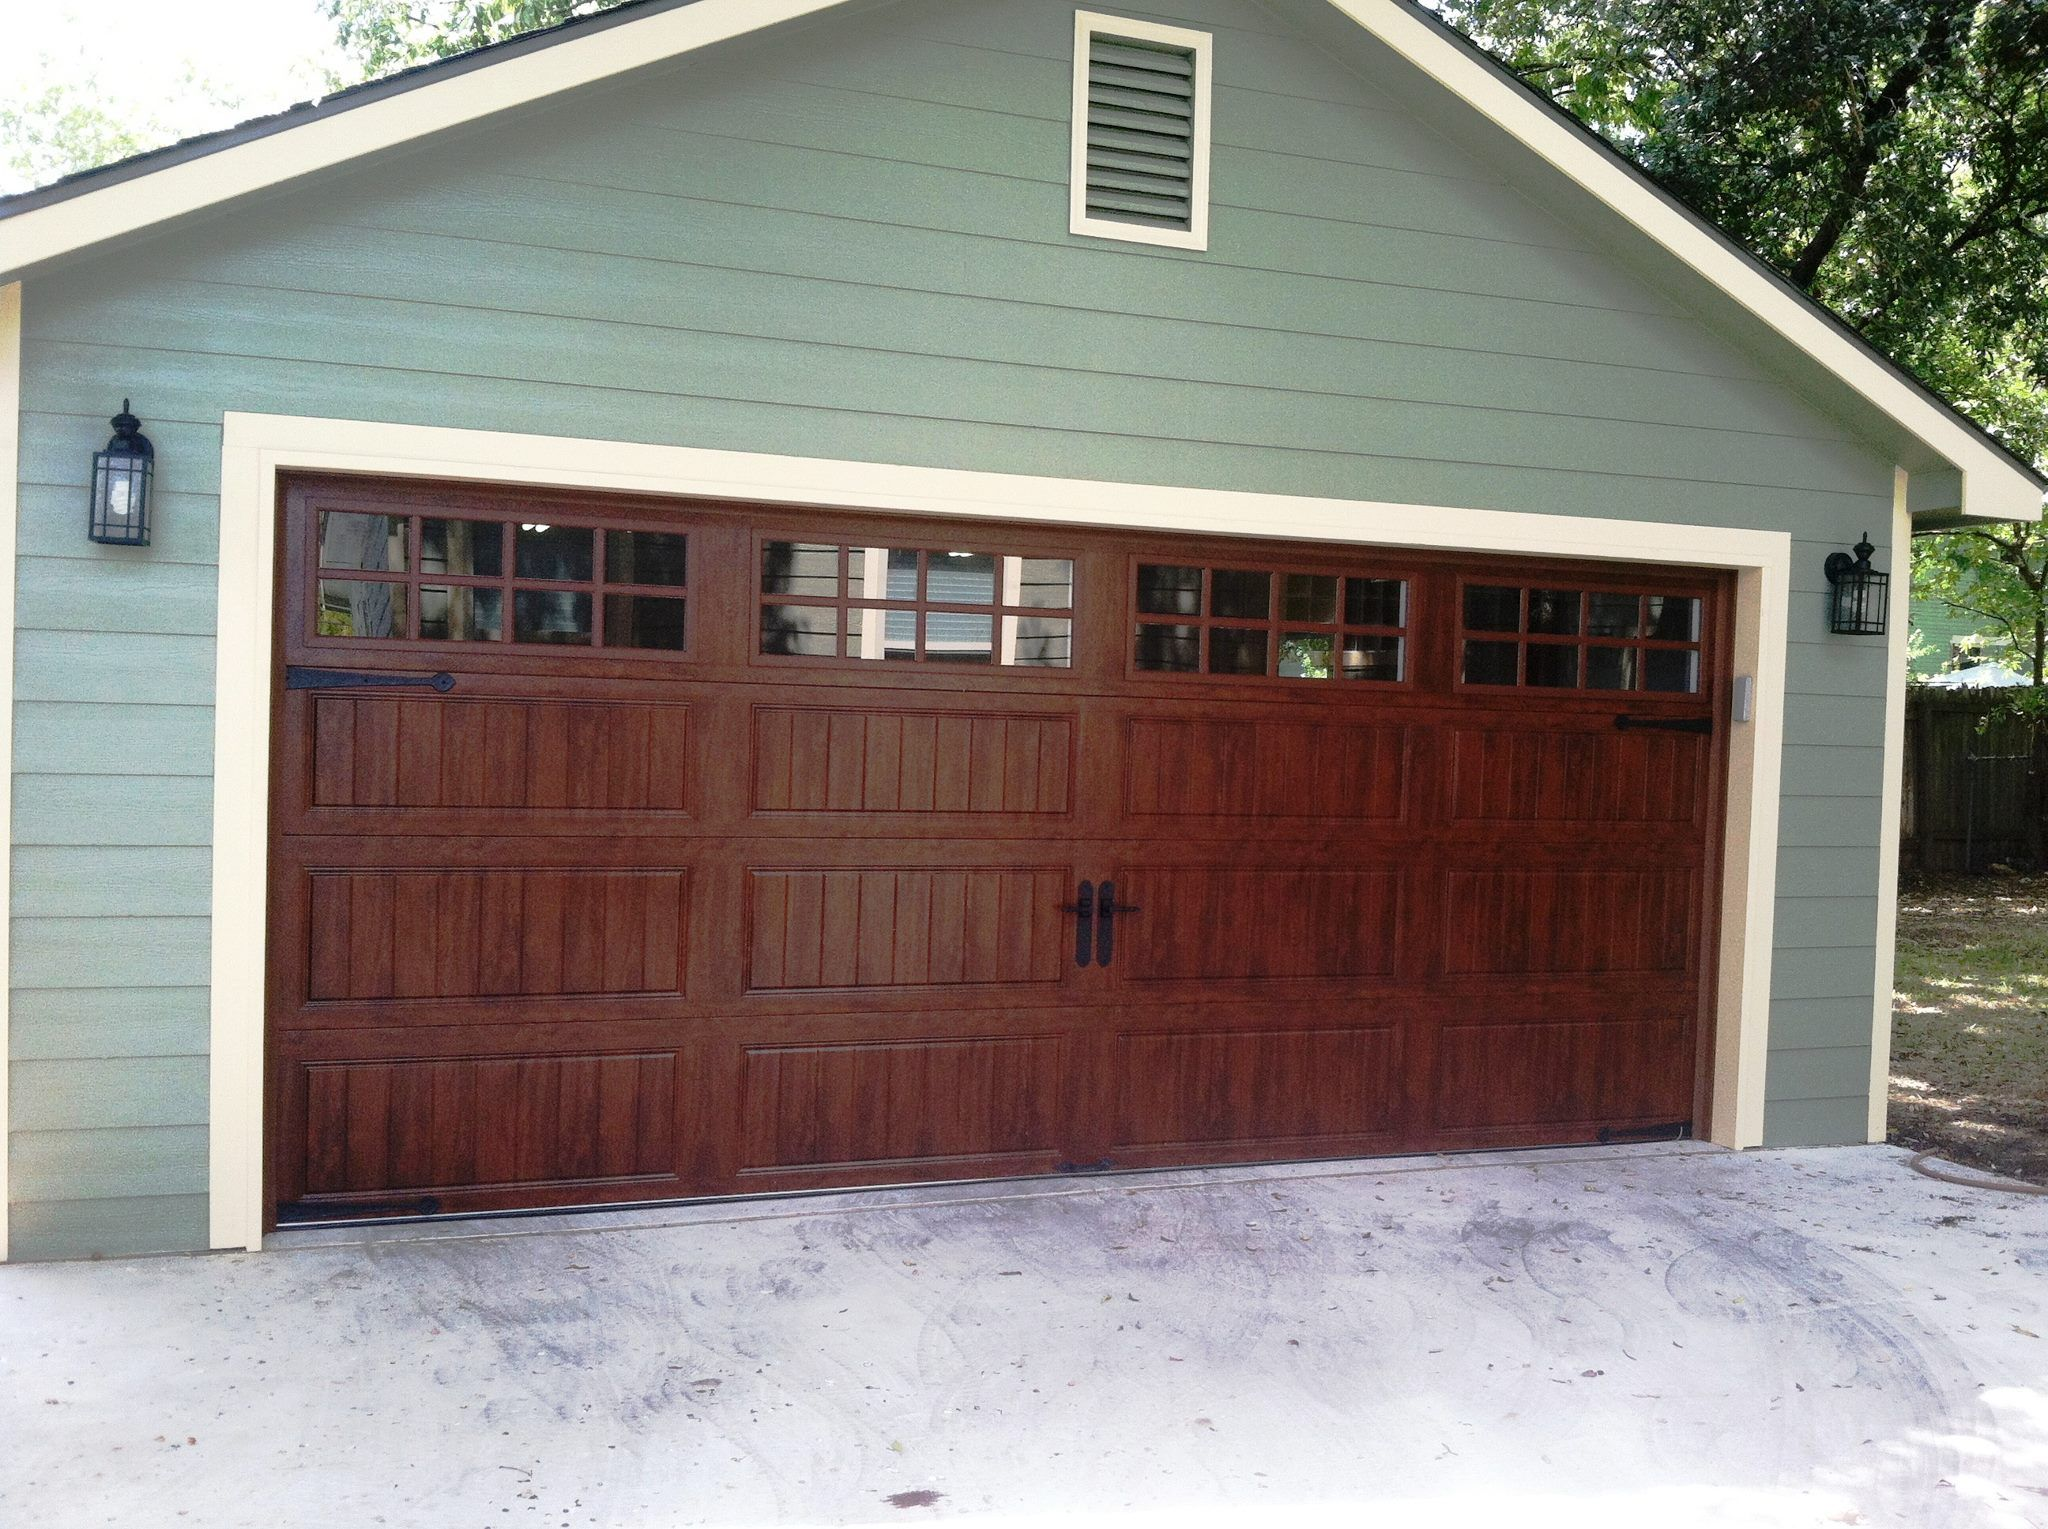 Clopay gallery collection grooved panel steel garage door for Garage door colors